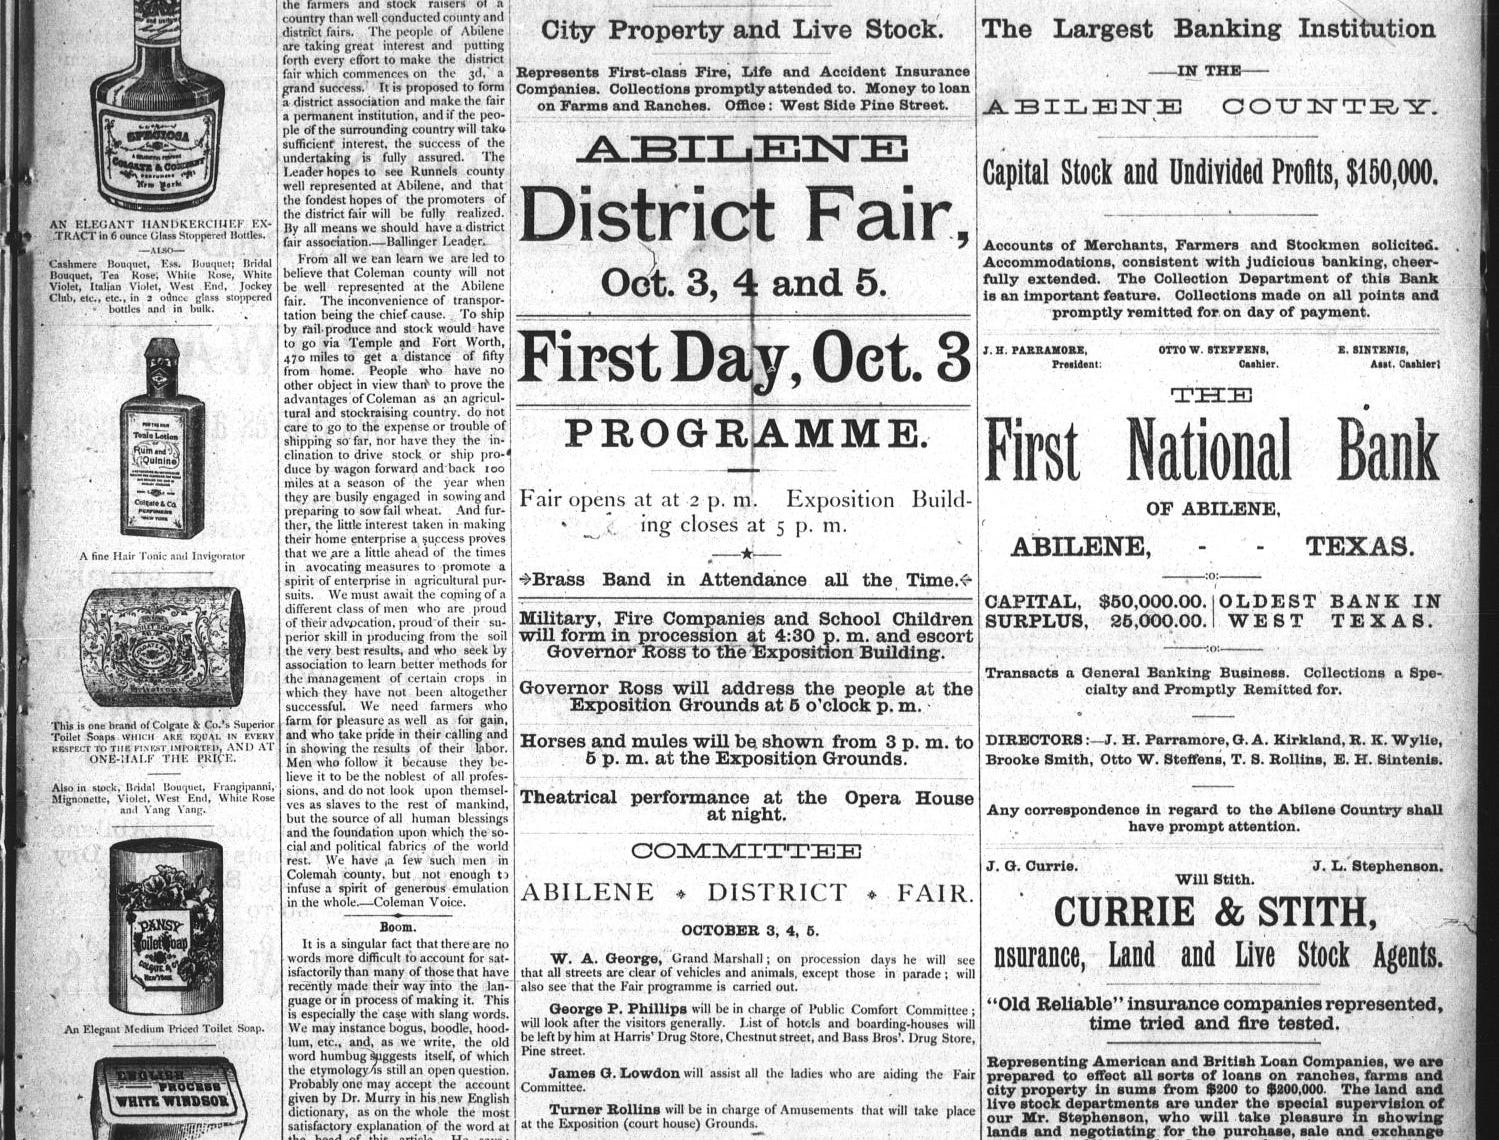 The Abilene Reporter, historical front page,